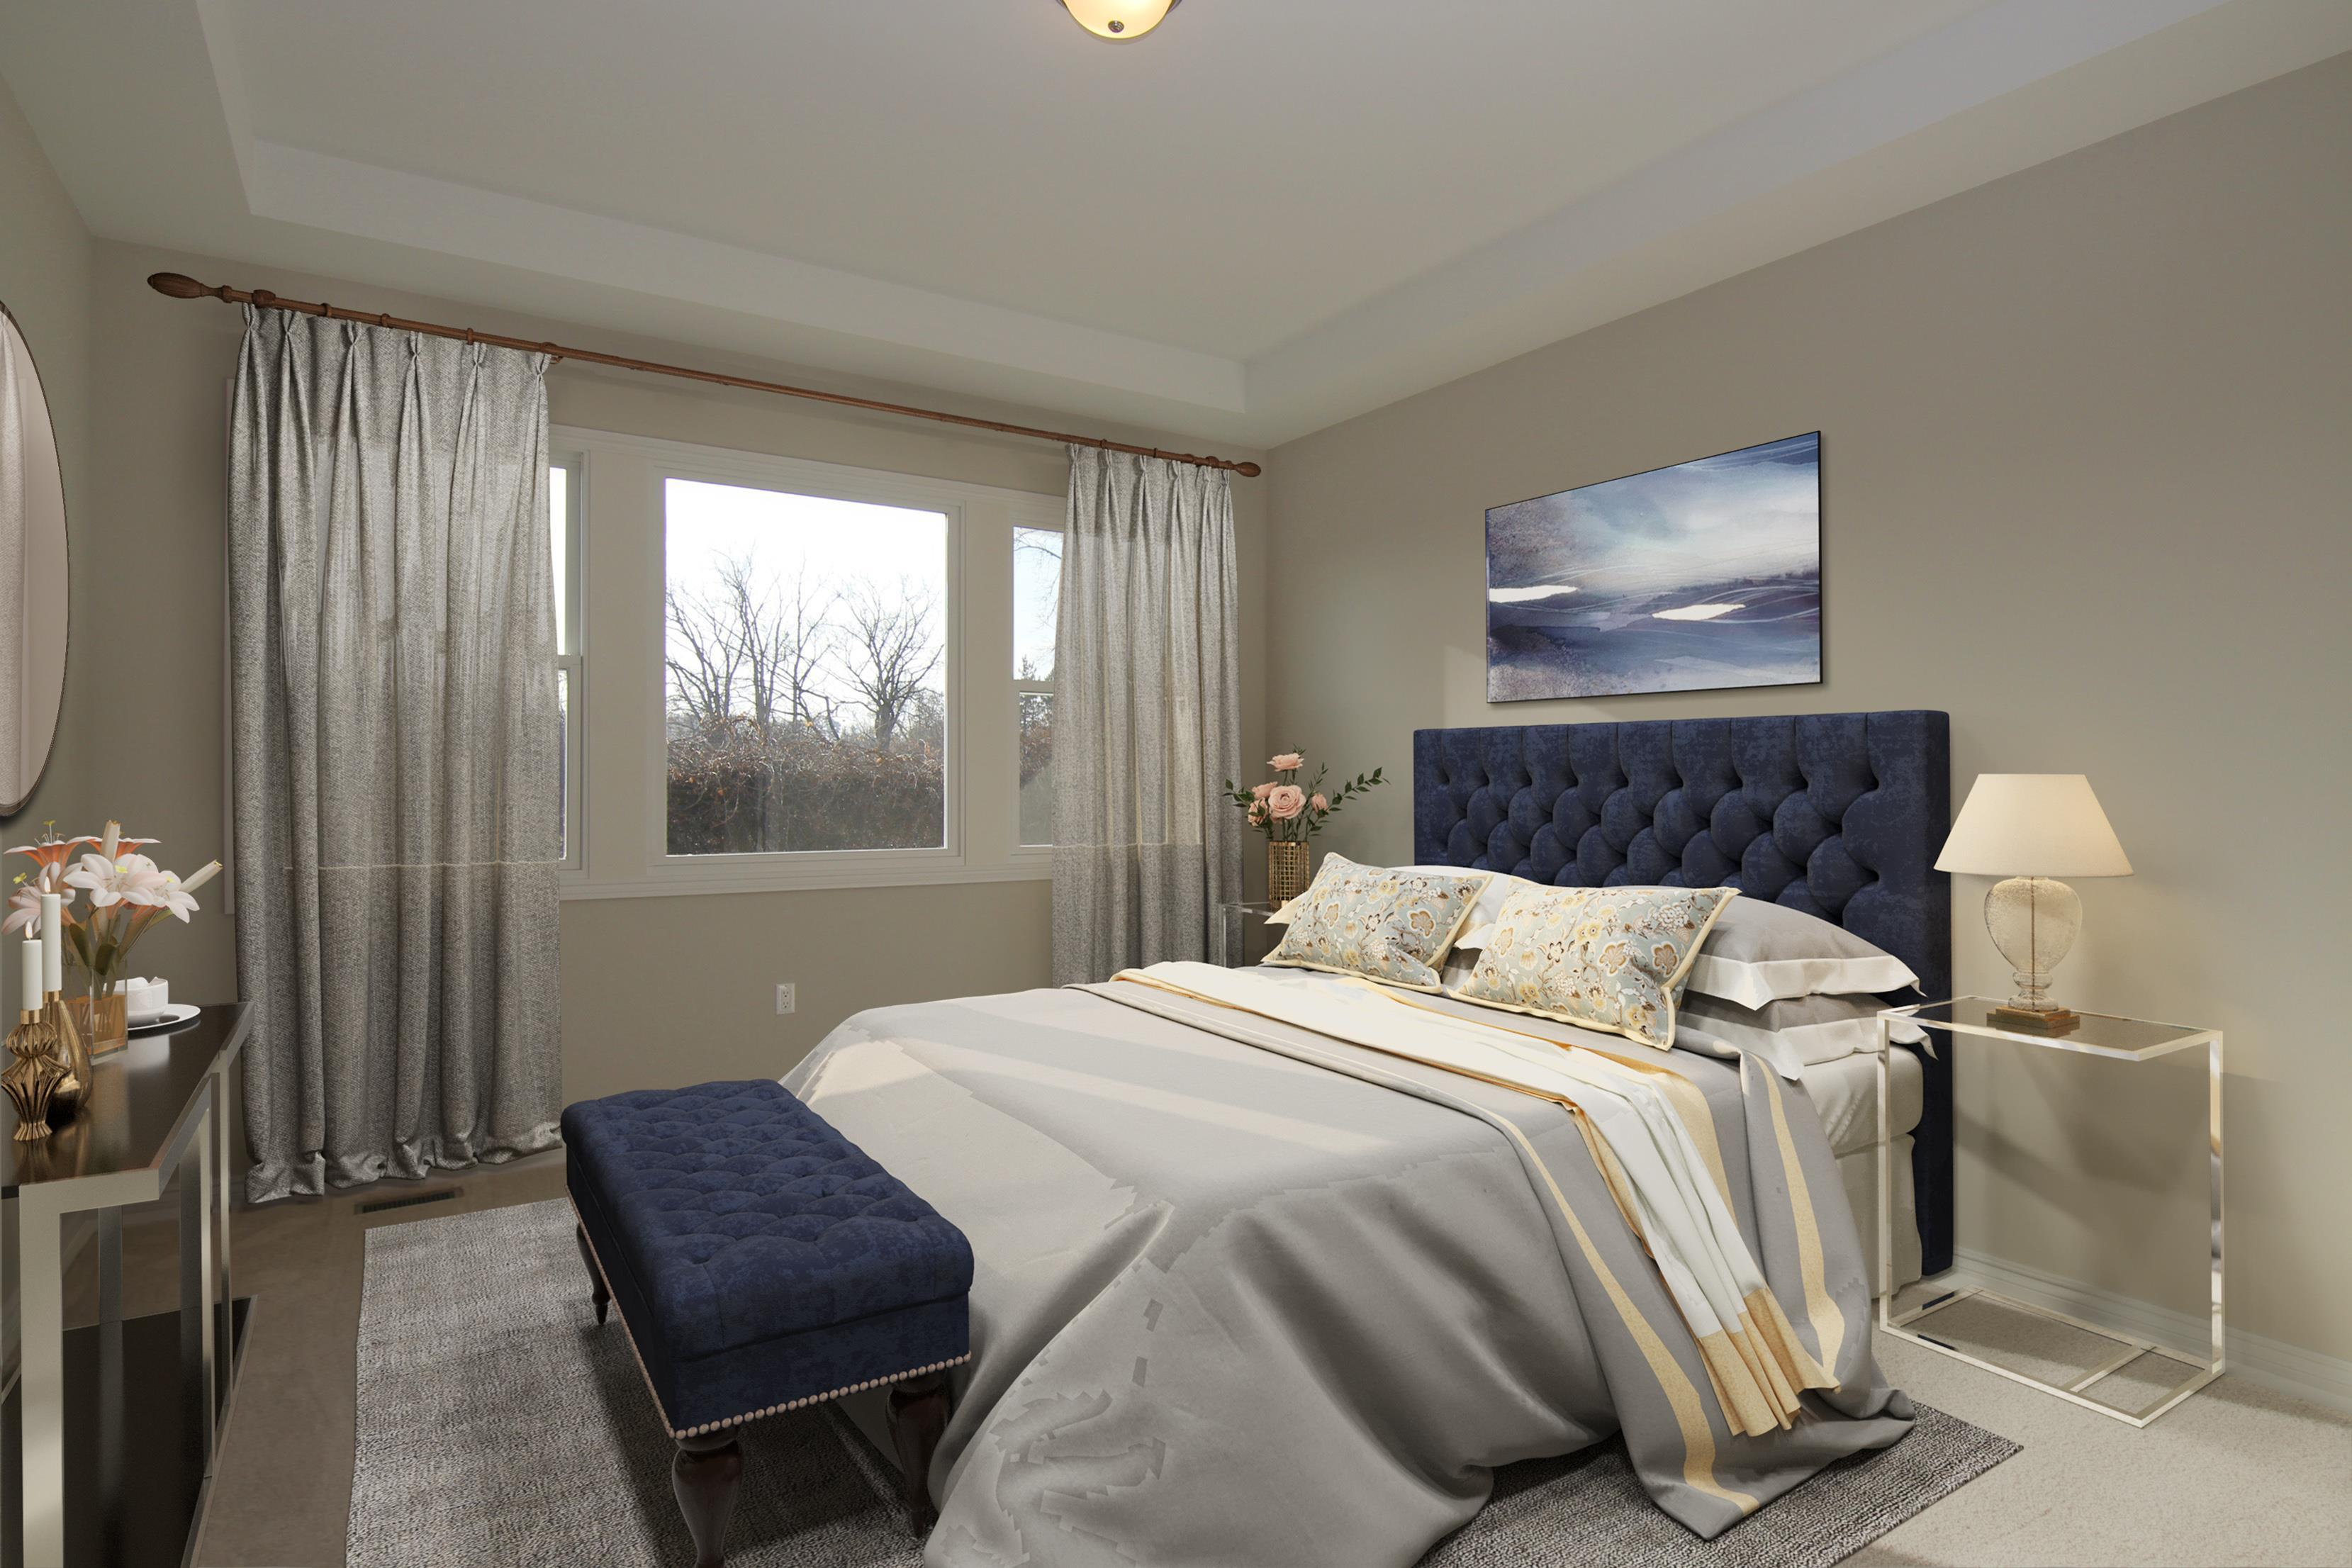 Bedroom featured in The Traverse  By AP Builders in Detroit, MI